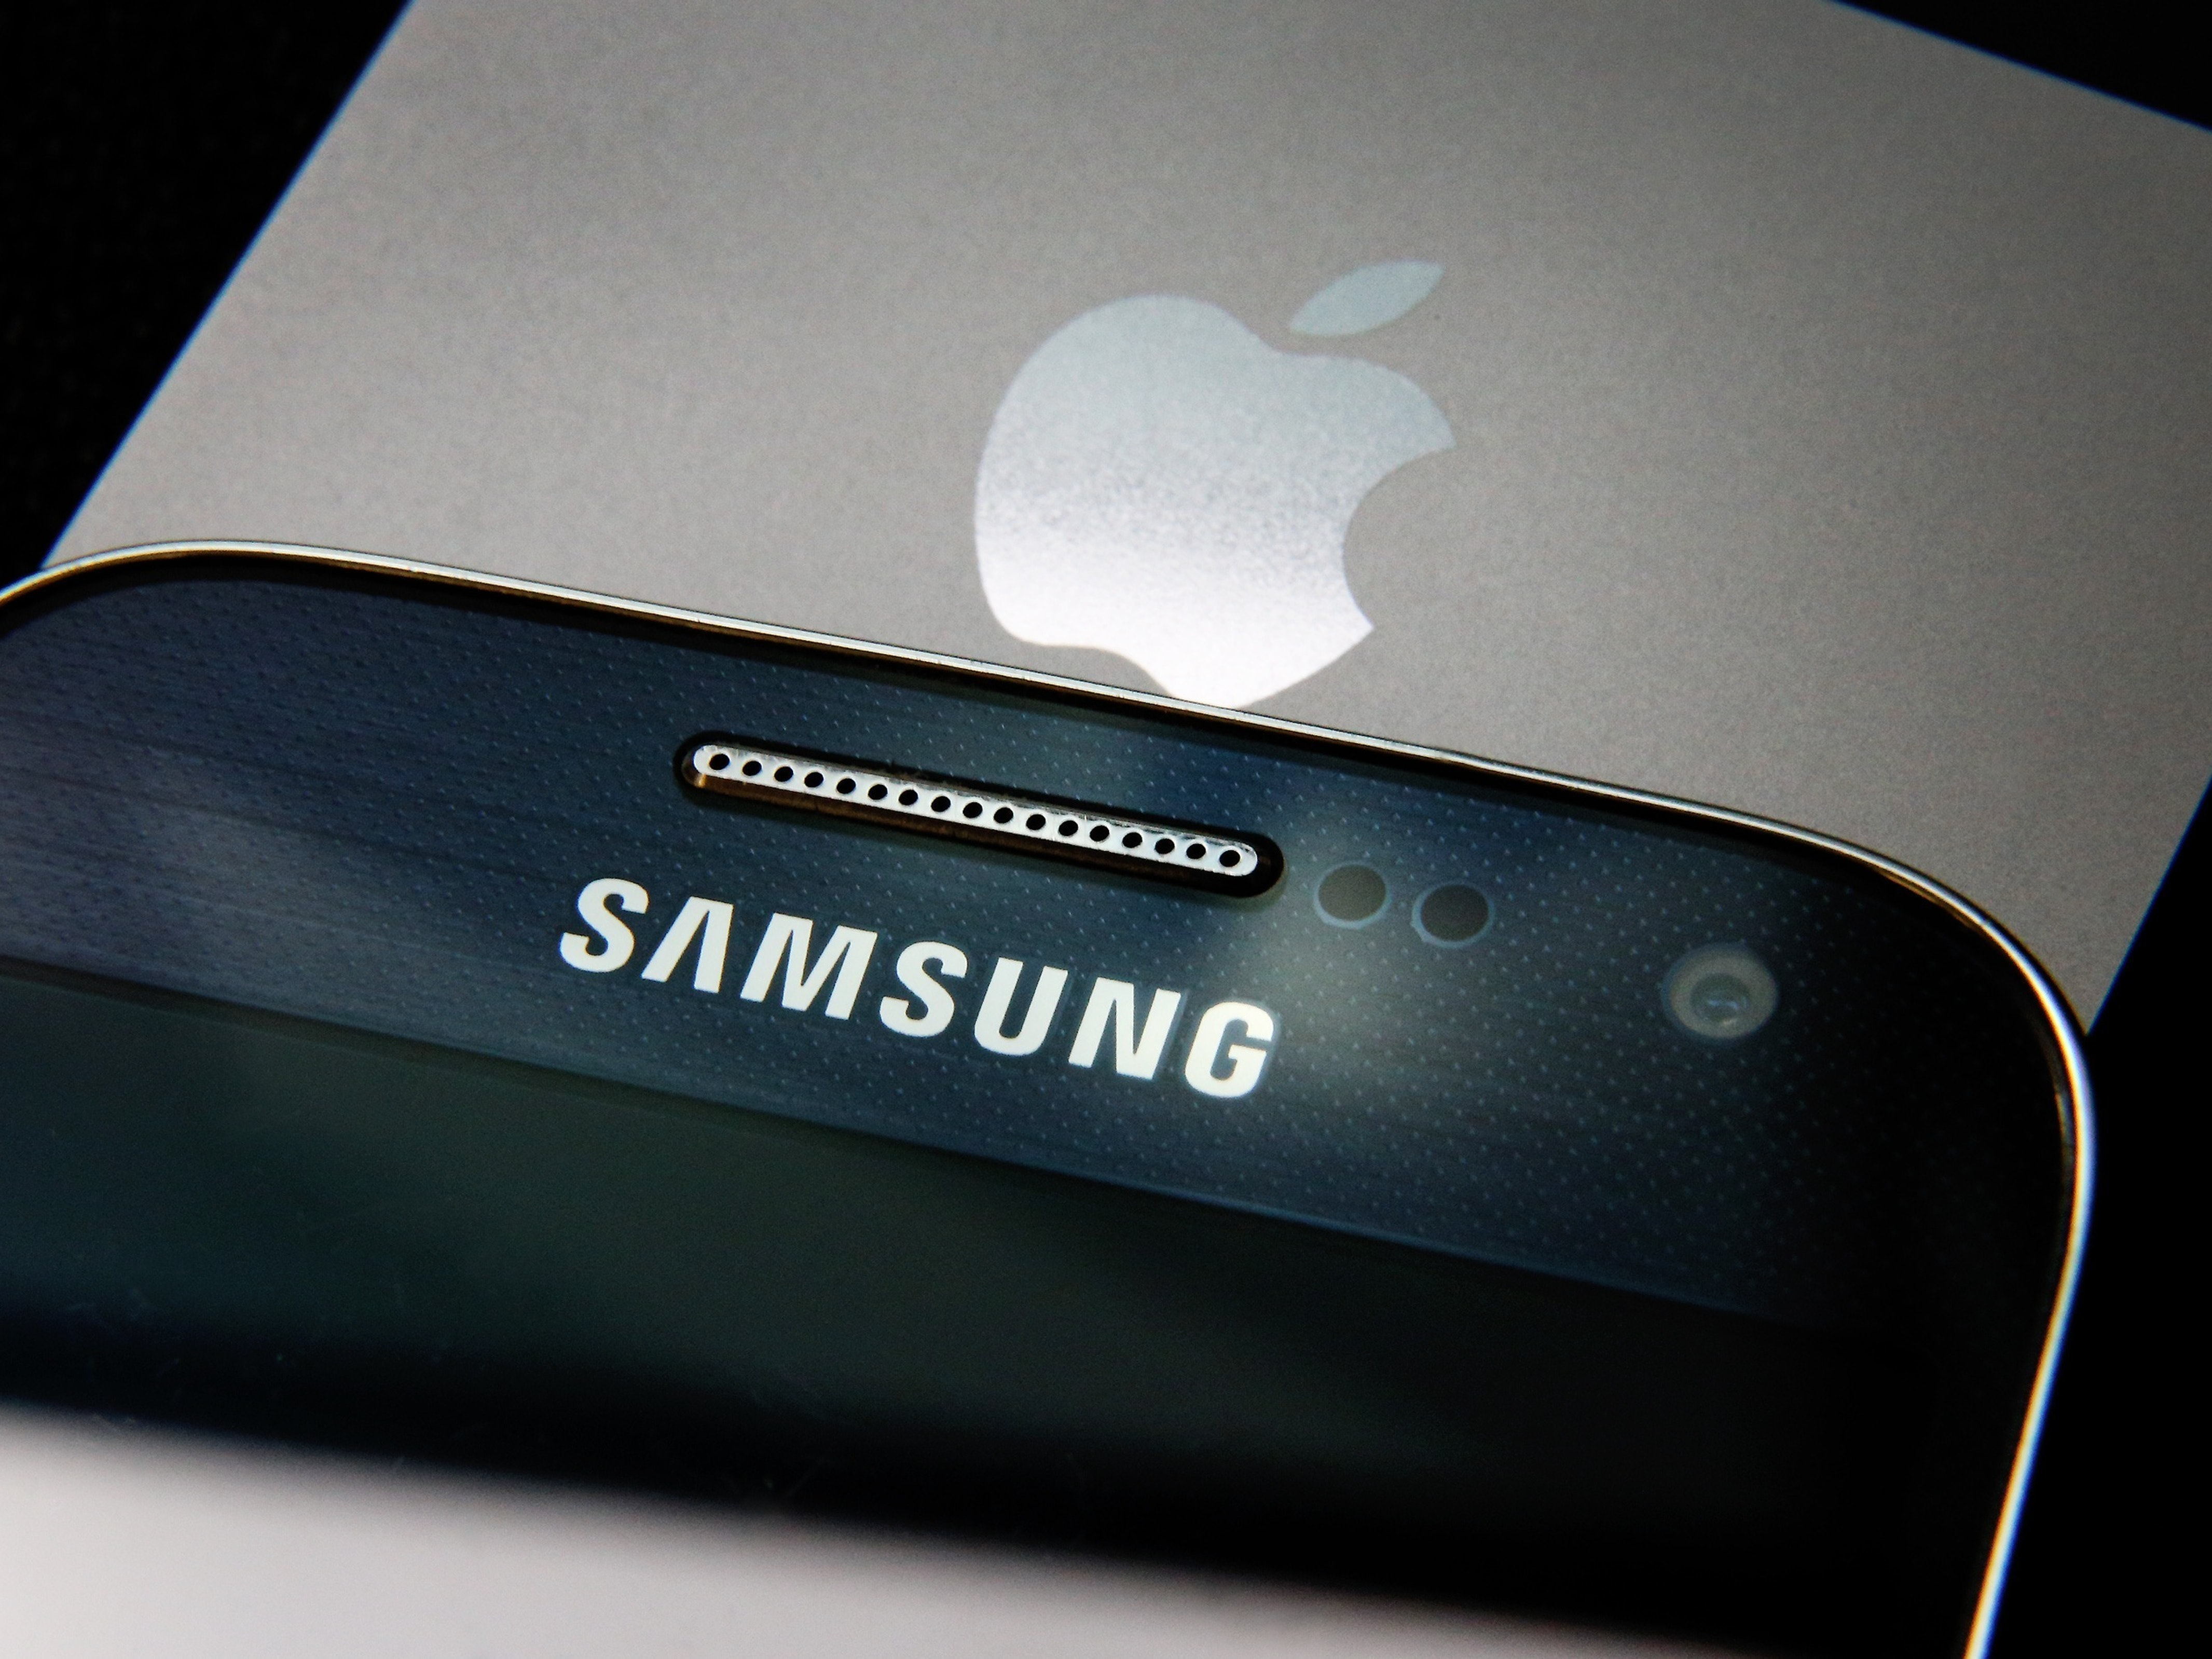 A Samsung and Apple smartphone are displayed on August 6, 2014 in London, England. Smartphone and tablet manufacturers Samsung and Apple have agreed to end all legal cases over patent infringements outside of the US.